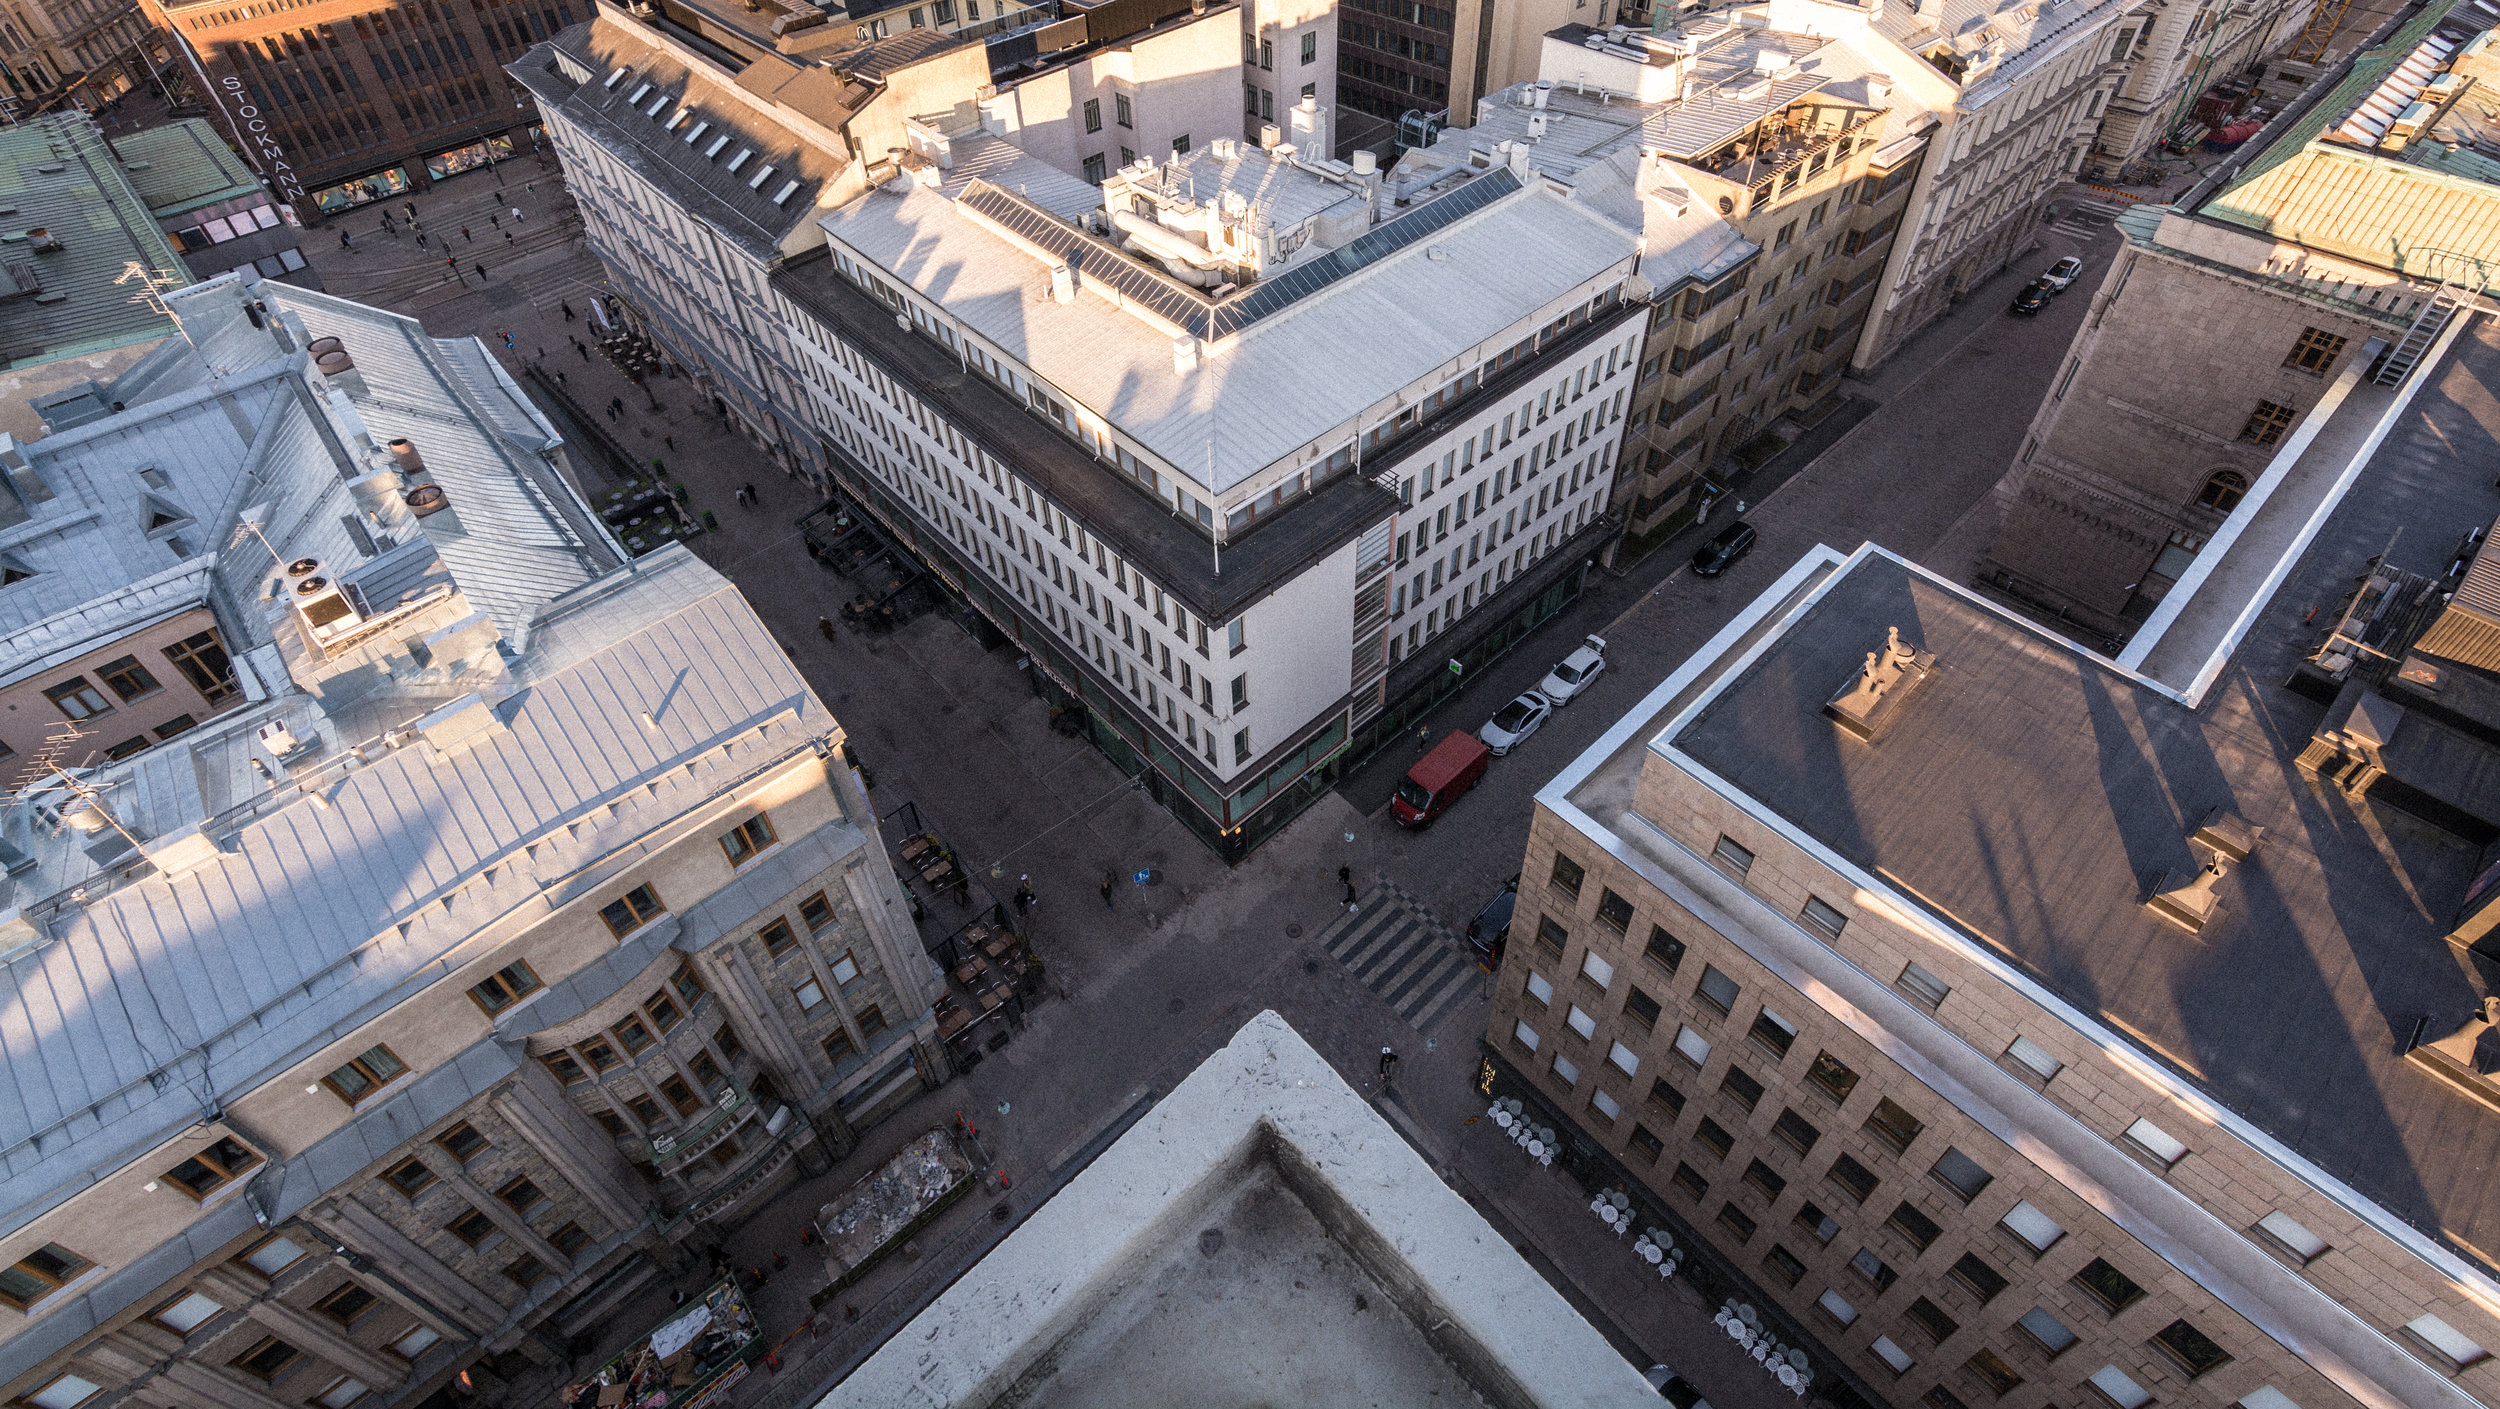 View from rooftop in Helsinki